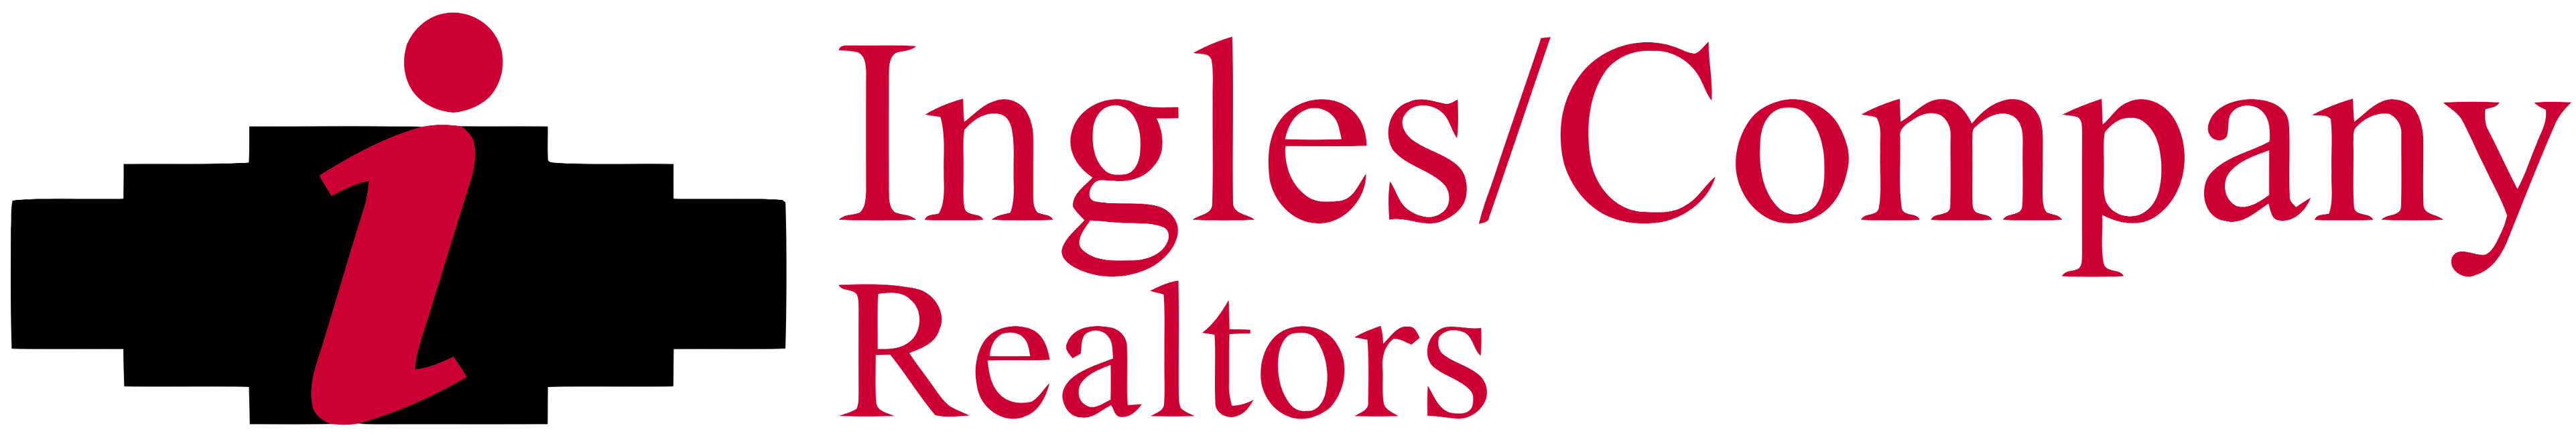 The Ingles/Company Realtors